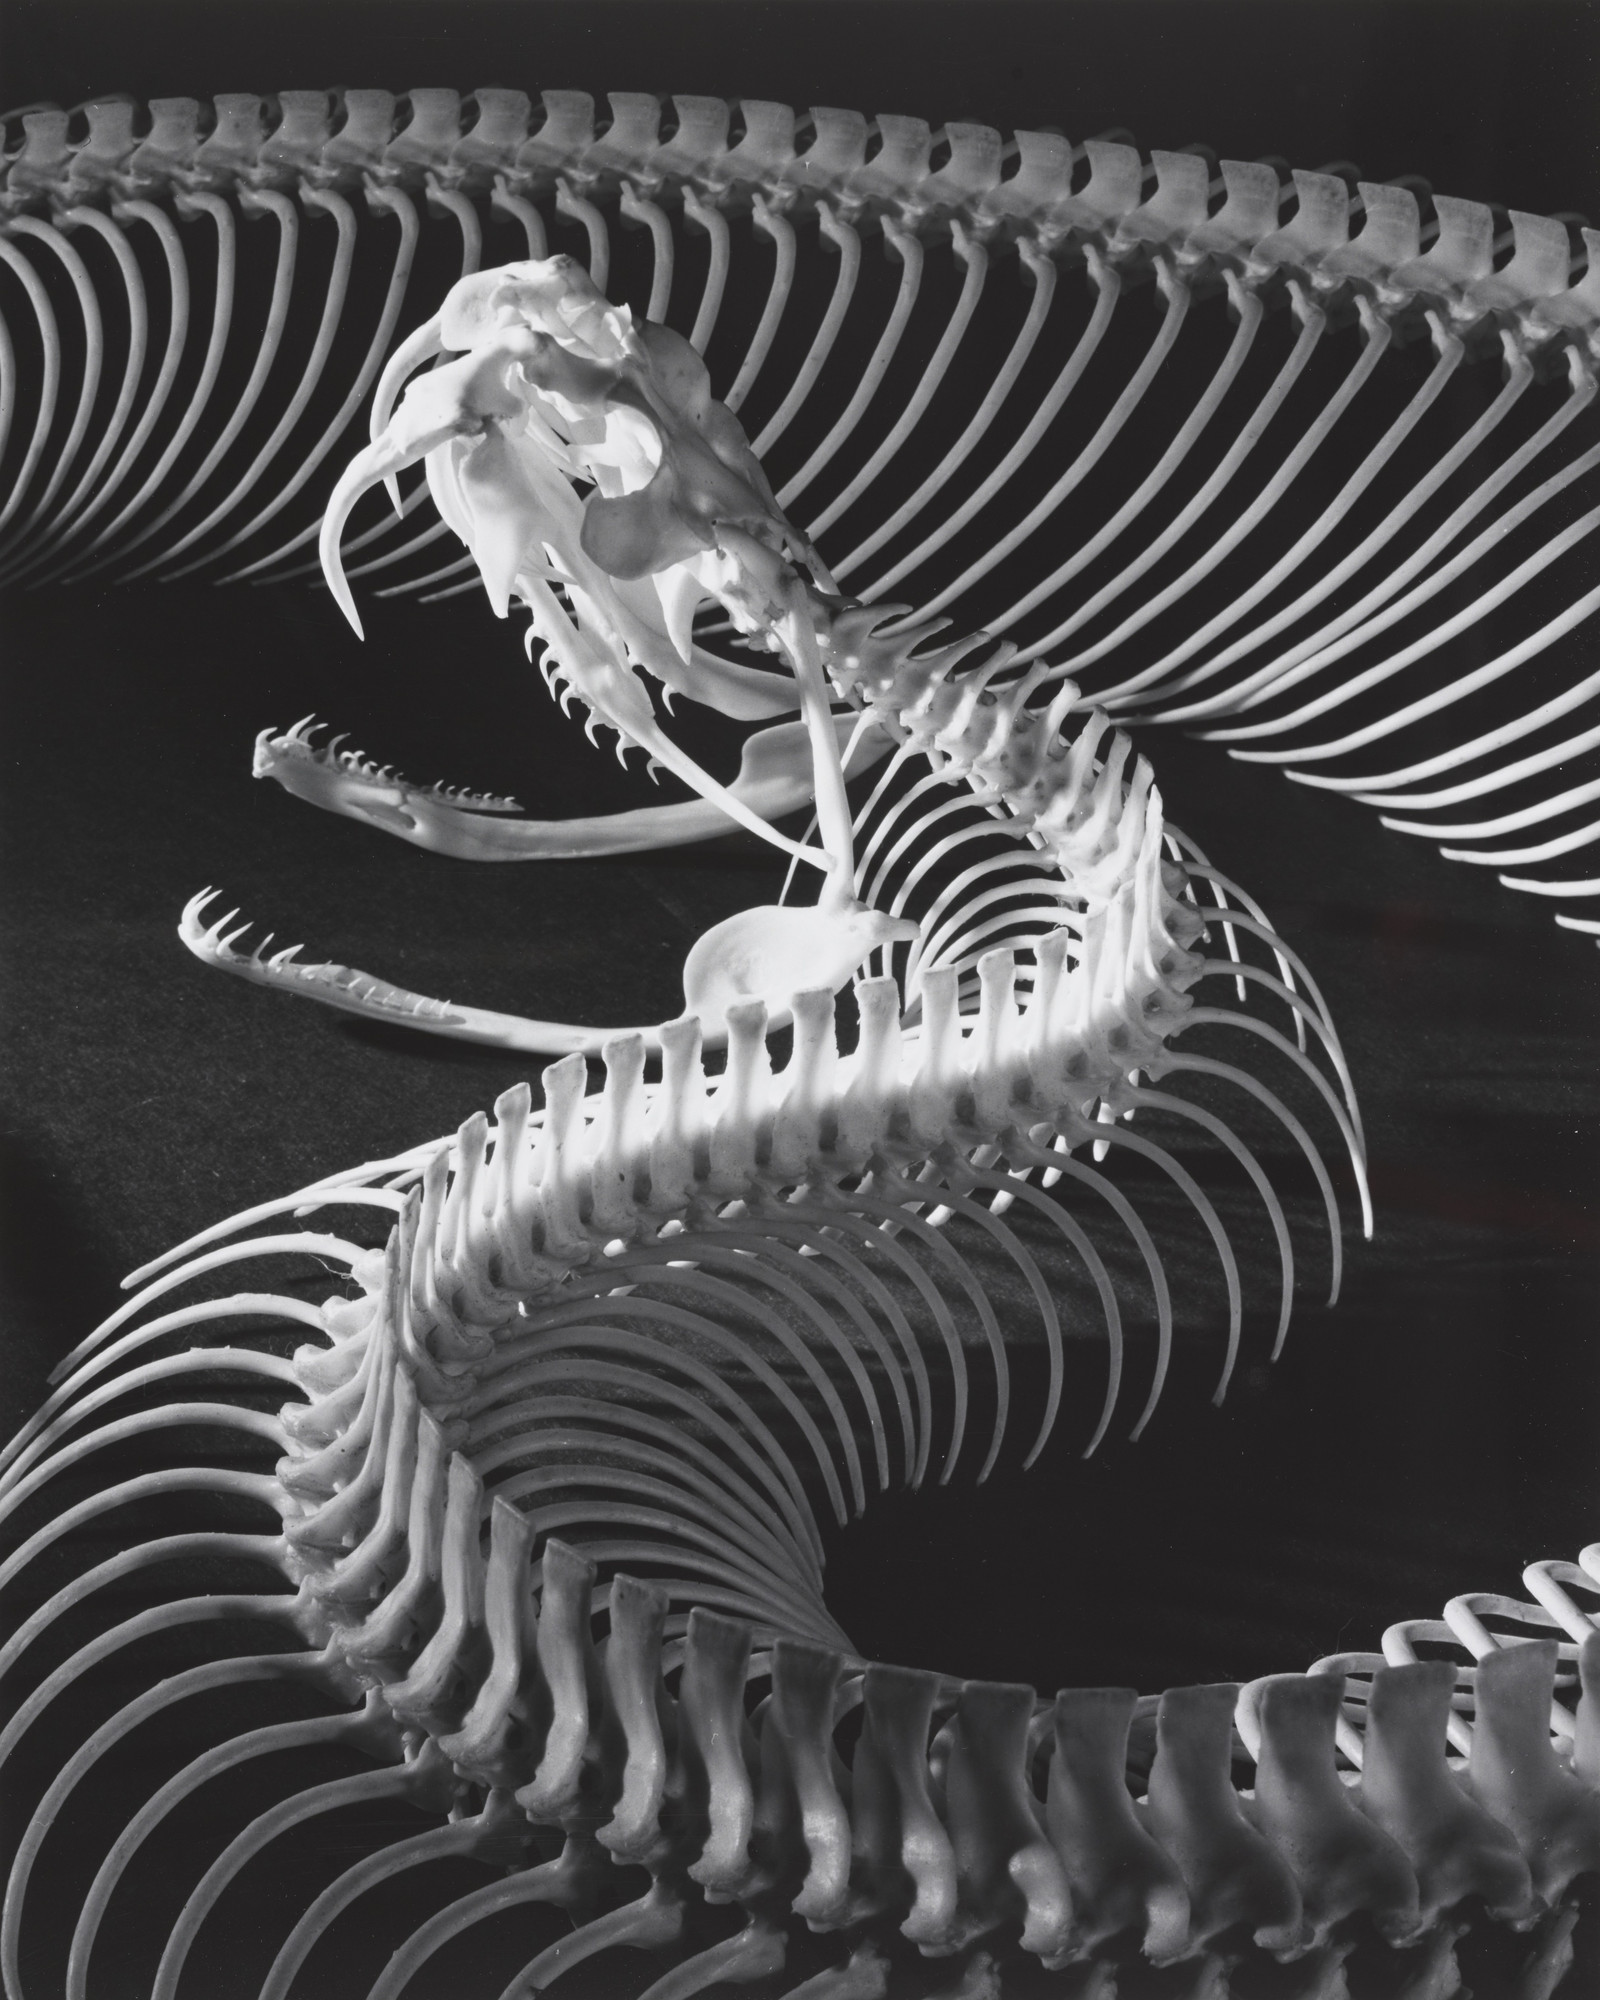 Andreas Feininger. The Skeleton of a Gaboon Viper. 1952